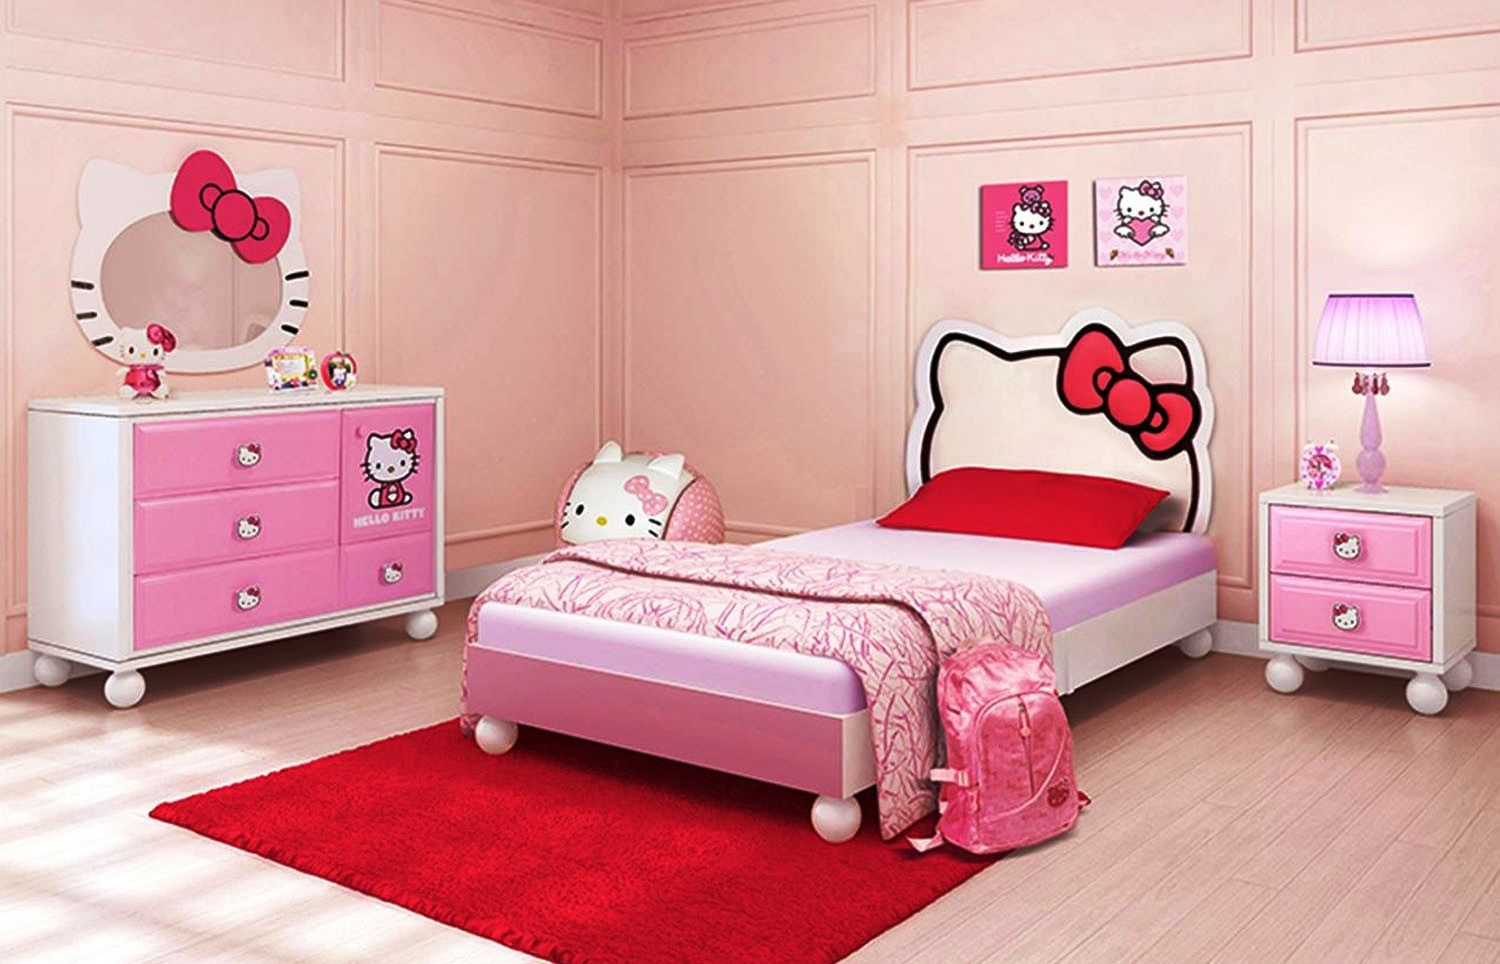 Bedroom Images Hello Kitty And Decorating Ideas On Pinterest